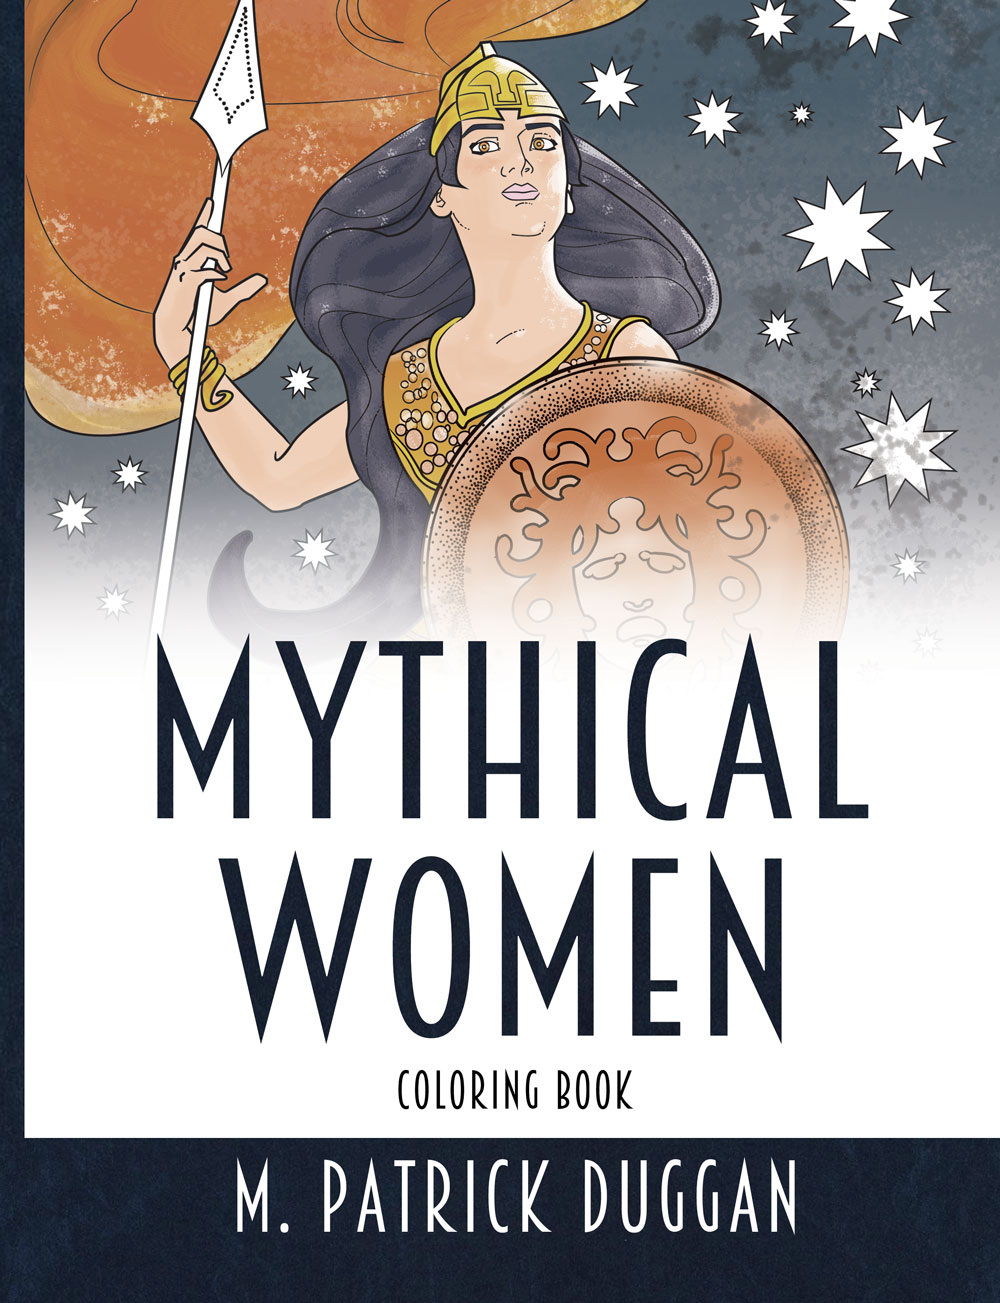 Mythical Women Coloring Book by M. Patrick Duggan